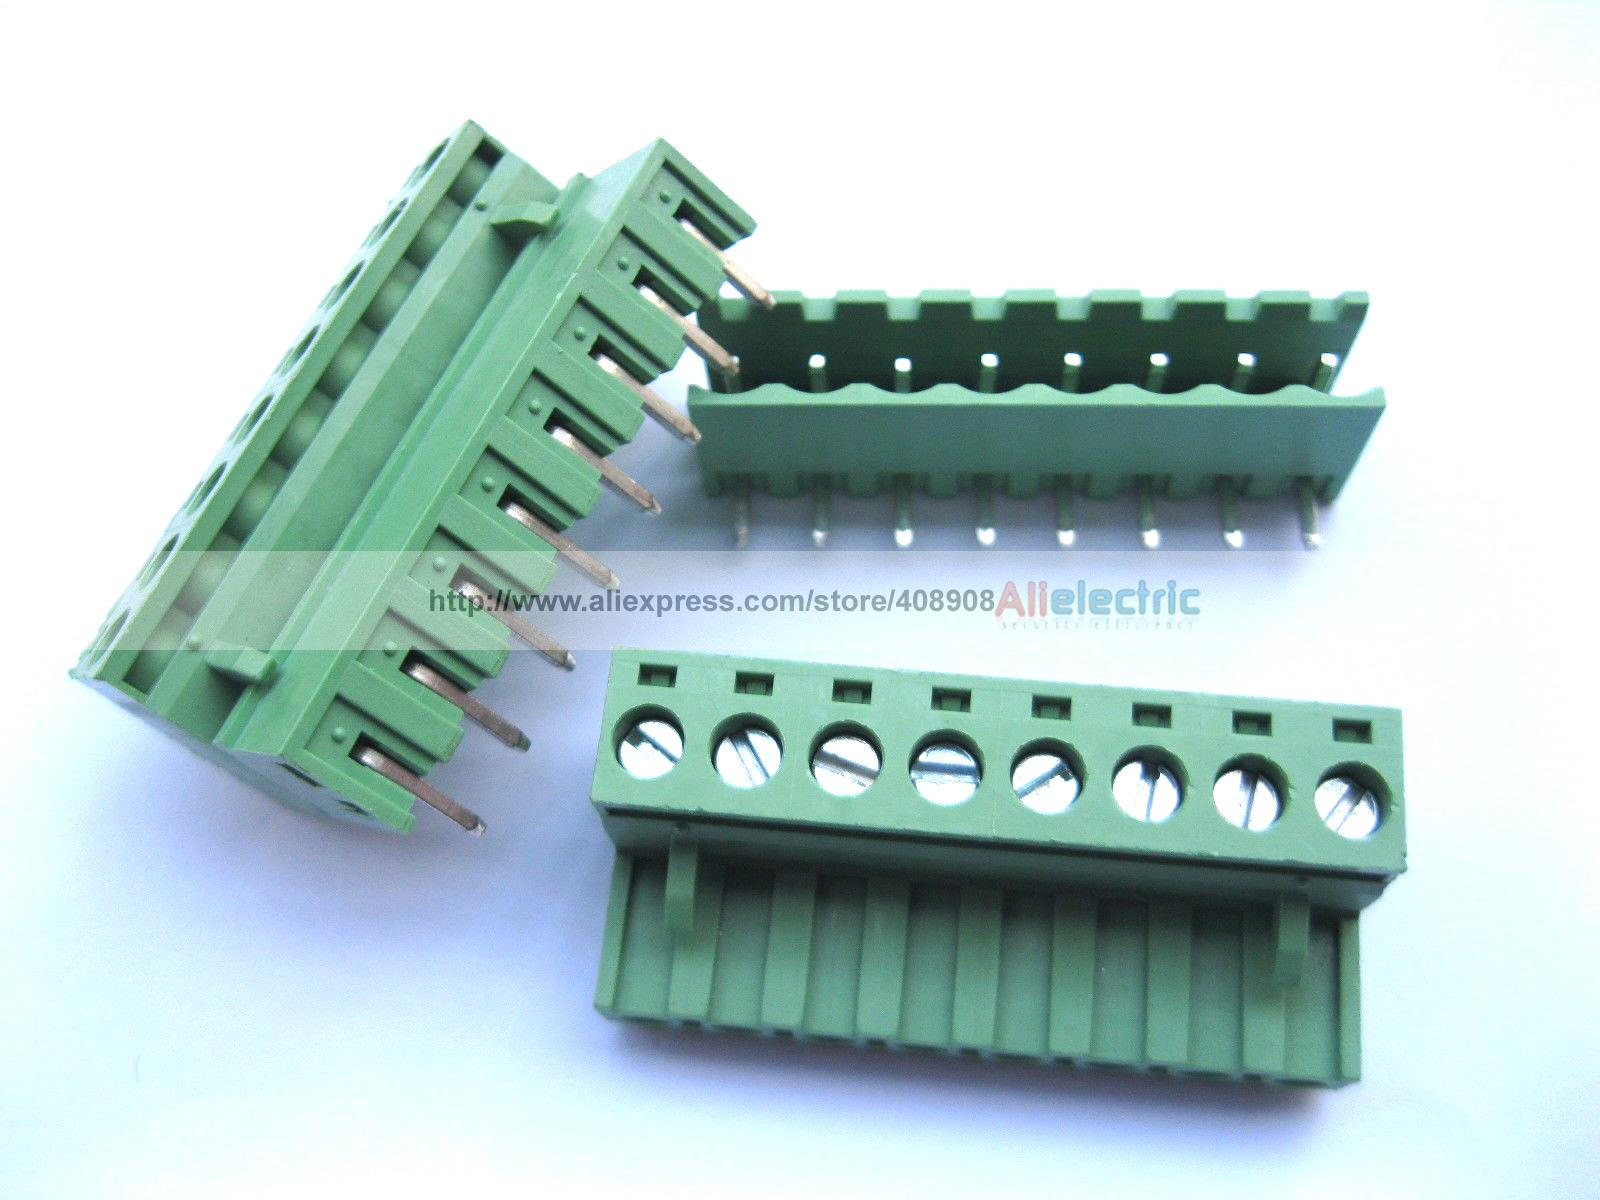 50 Pcs 5.08mm Angle 8 Pin Screw Terminal Block Connector Pluggable Type Green 30 pcs 5 08mm angle 16 pin screw terminal block connector pluggable type green